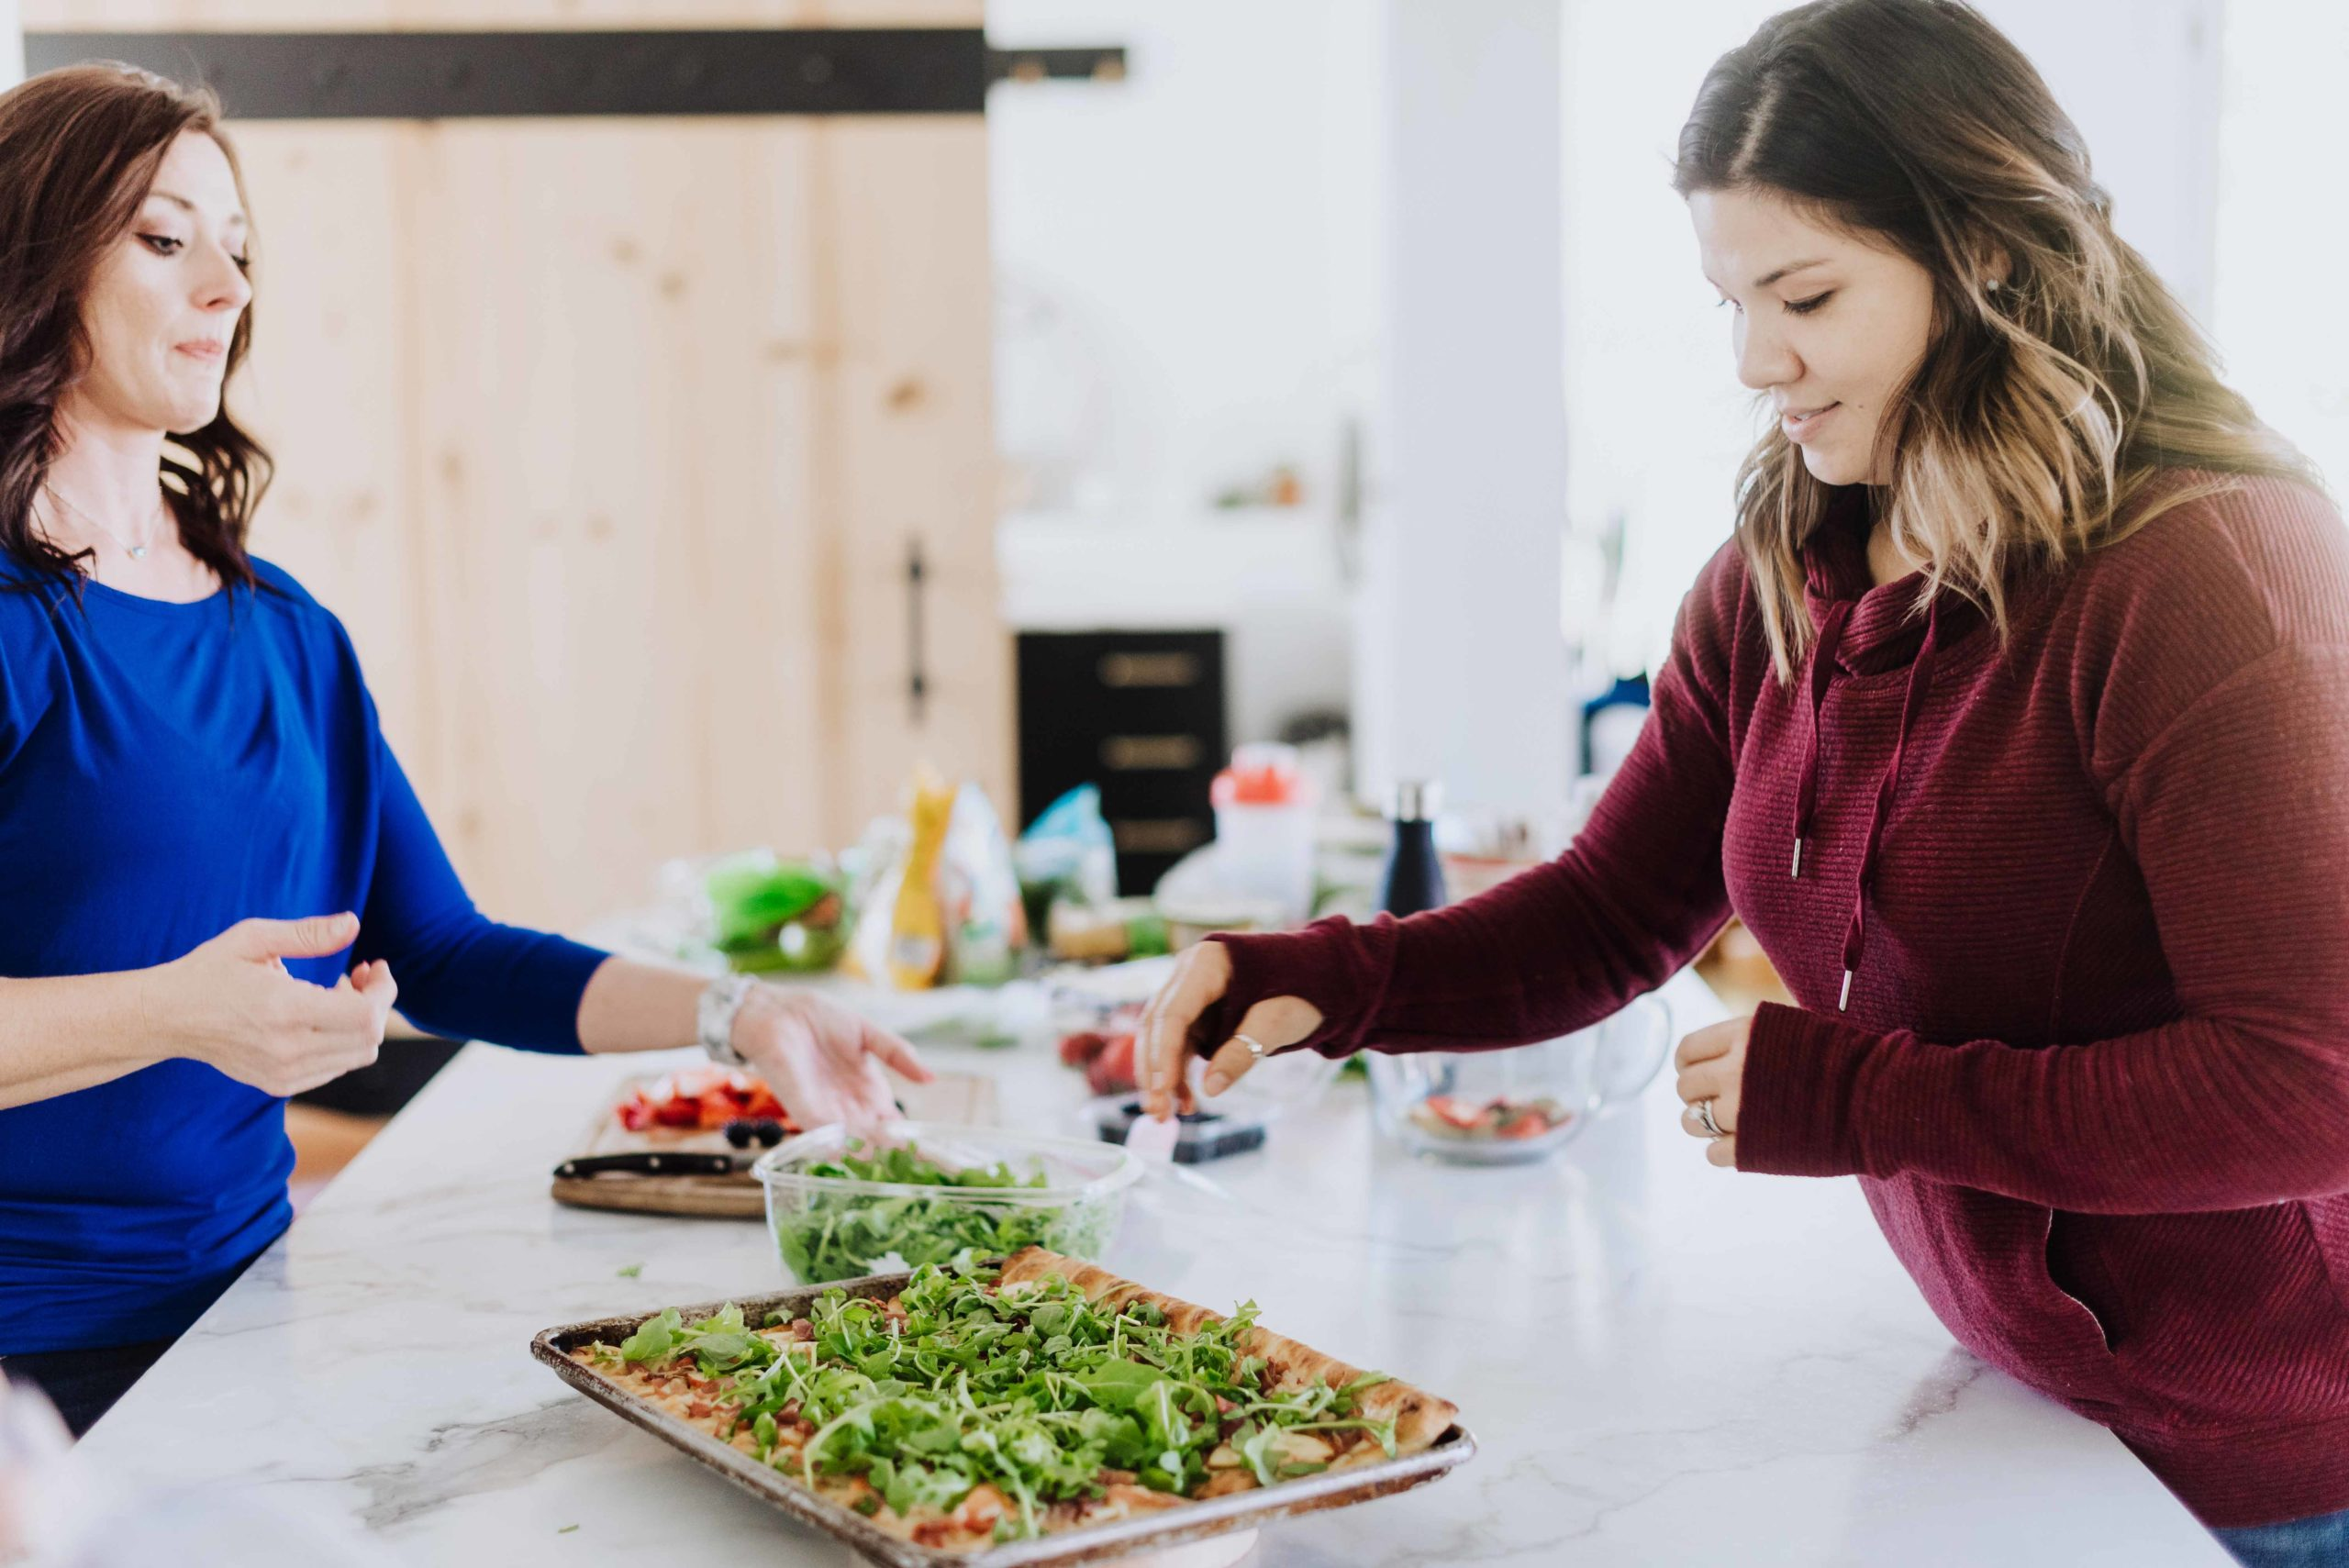 online nutrition coaching where client and nutrition coach work together to make a healthy meal